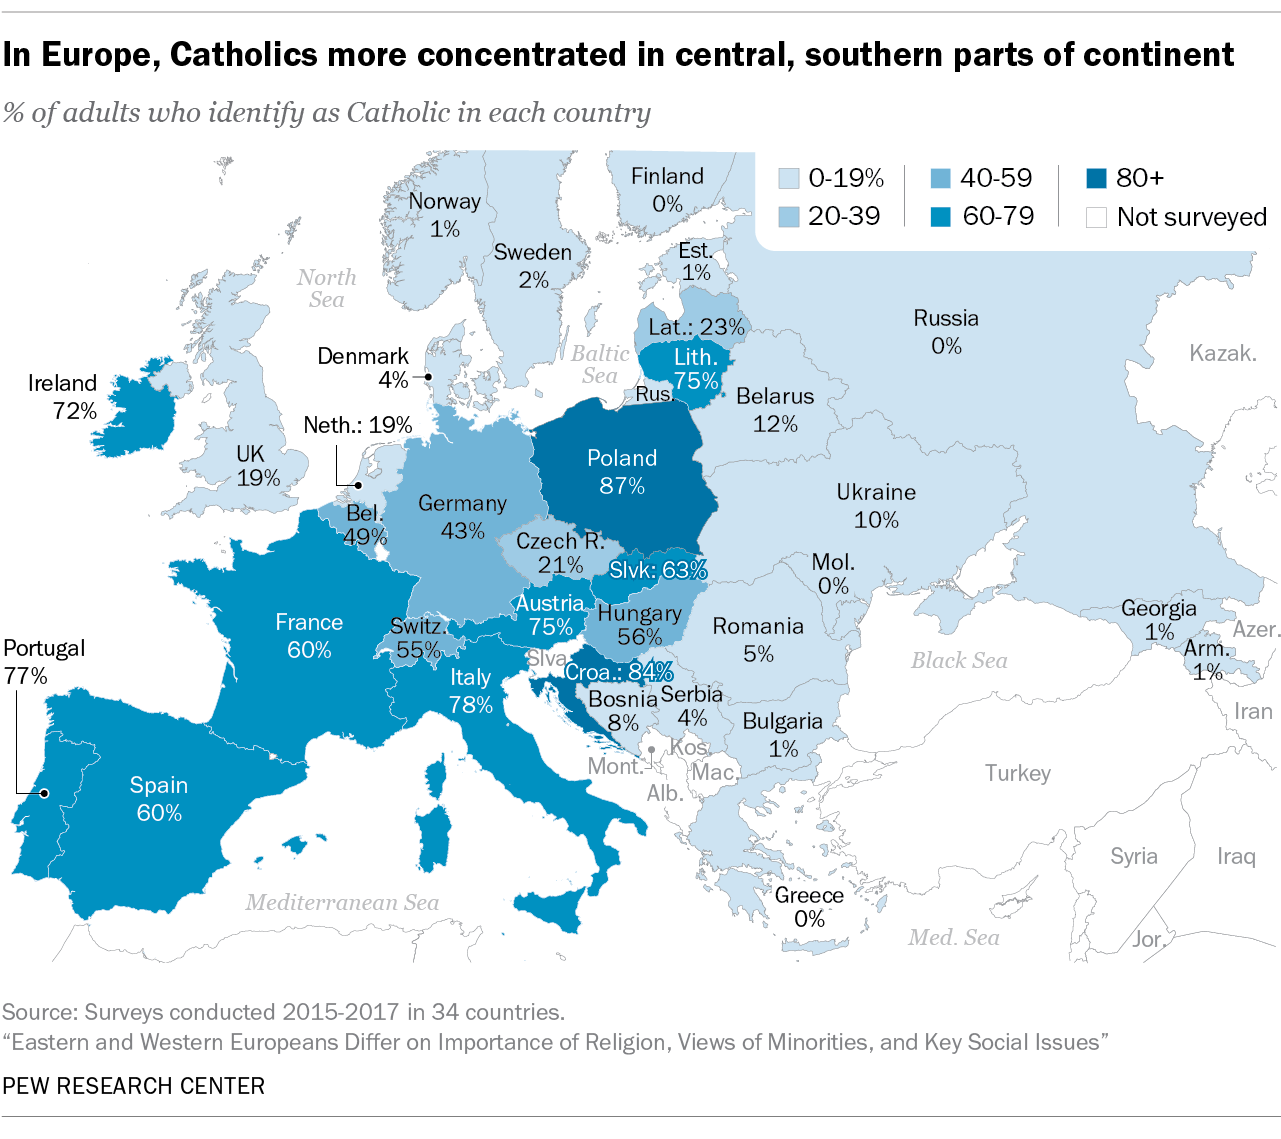 In Europe, Catholics more concentrated in central, southern parts of continent